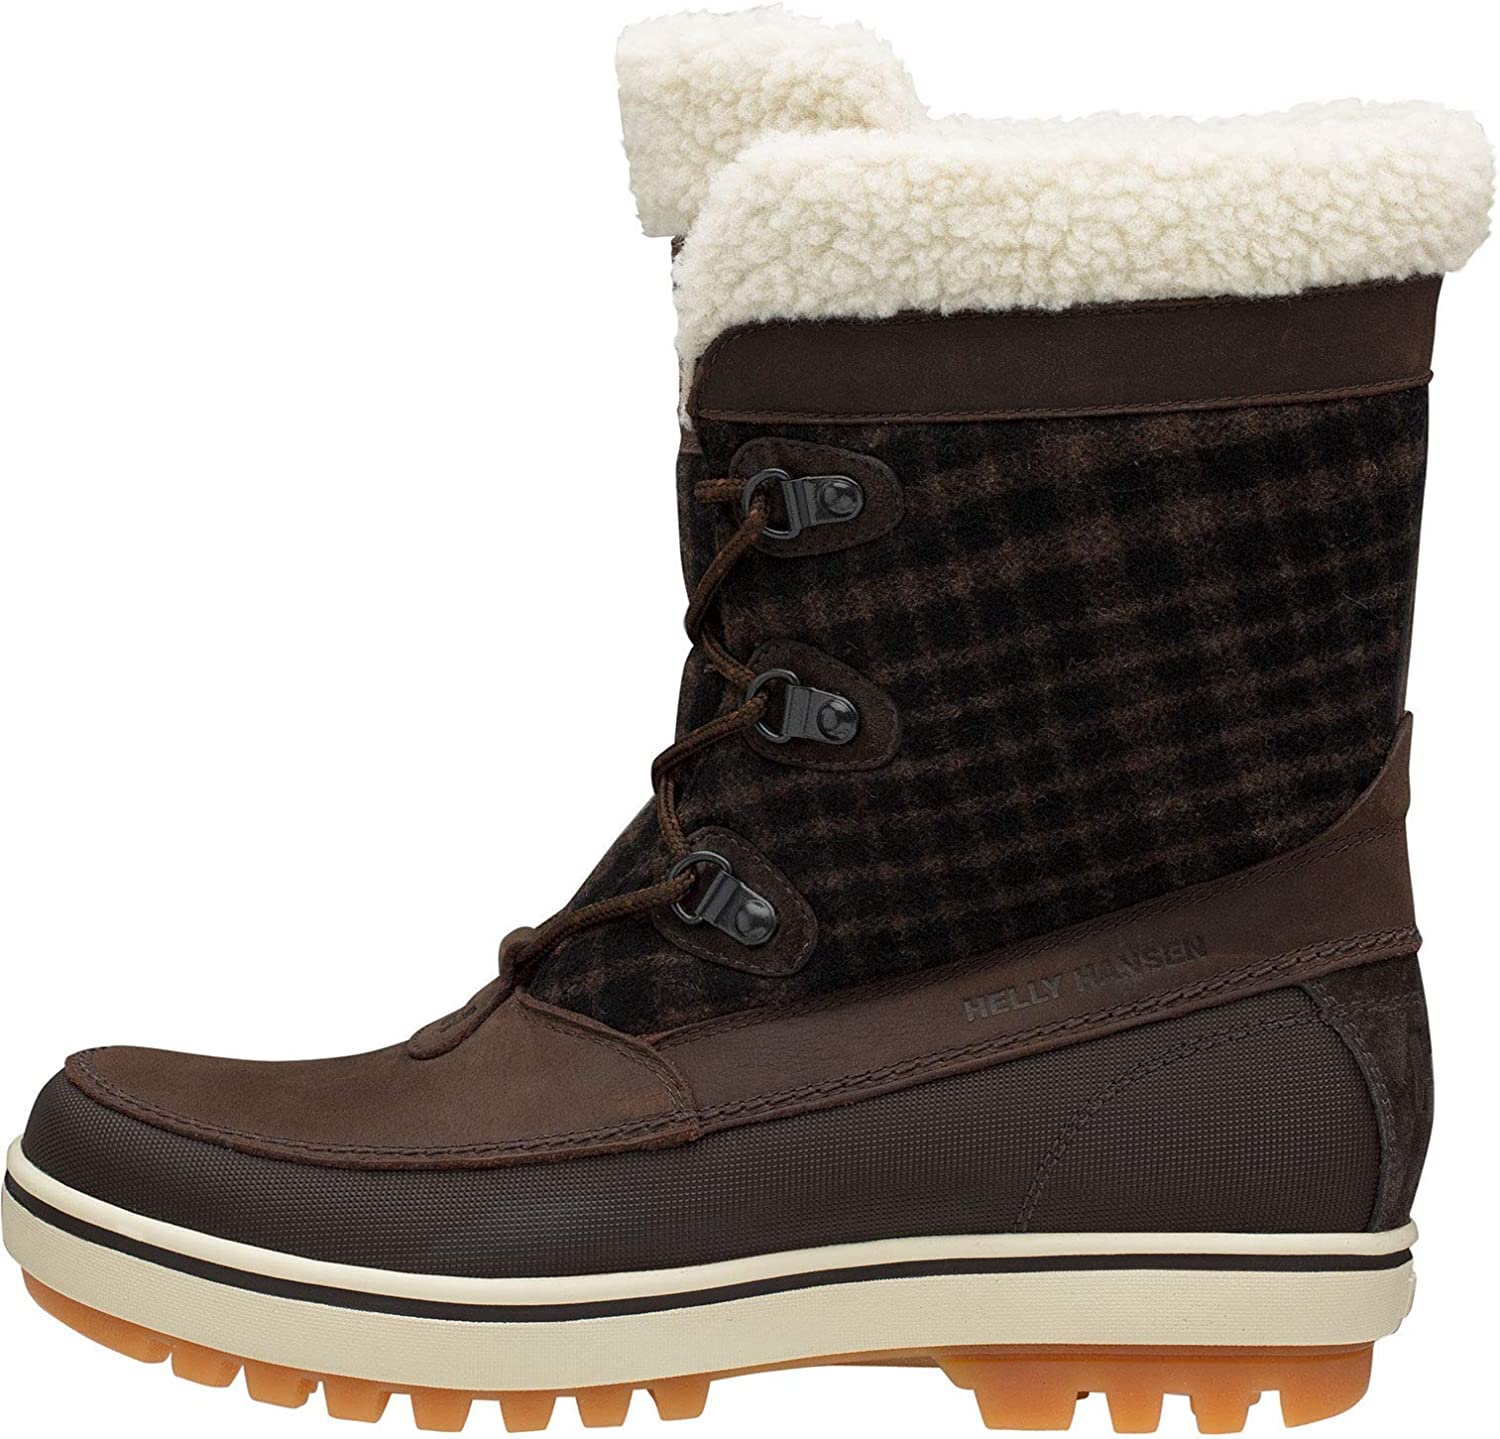 Helly Hansen Women's Slouch S Georgina Winter Boot with Faux Fur and Grip Clay Coffee Bean Soccer Gum 9, US:5